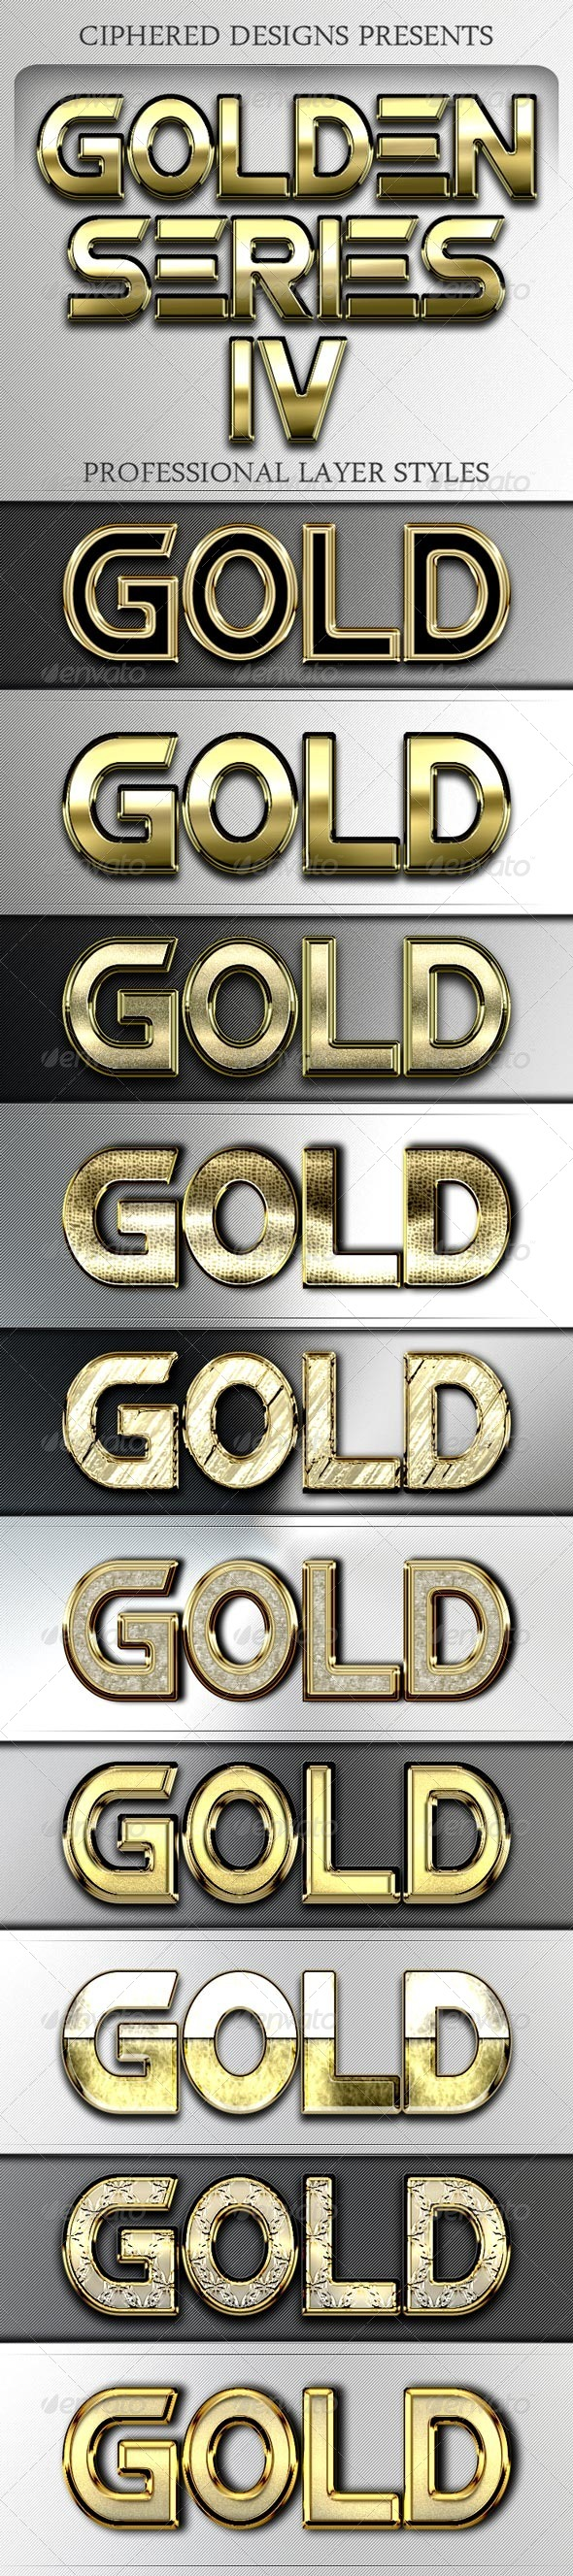 GraphicRiver Golden Series IV Professional Layer Styles 4130293